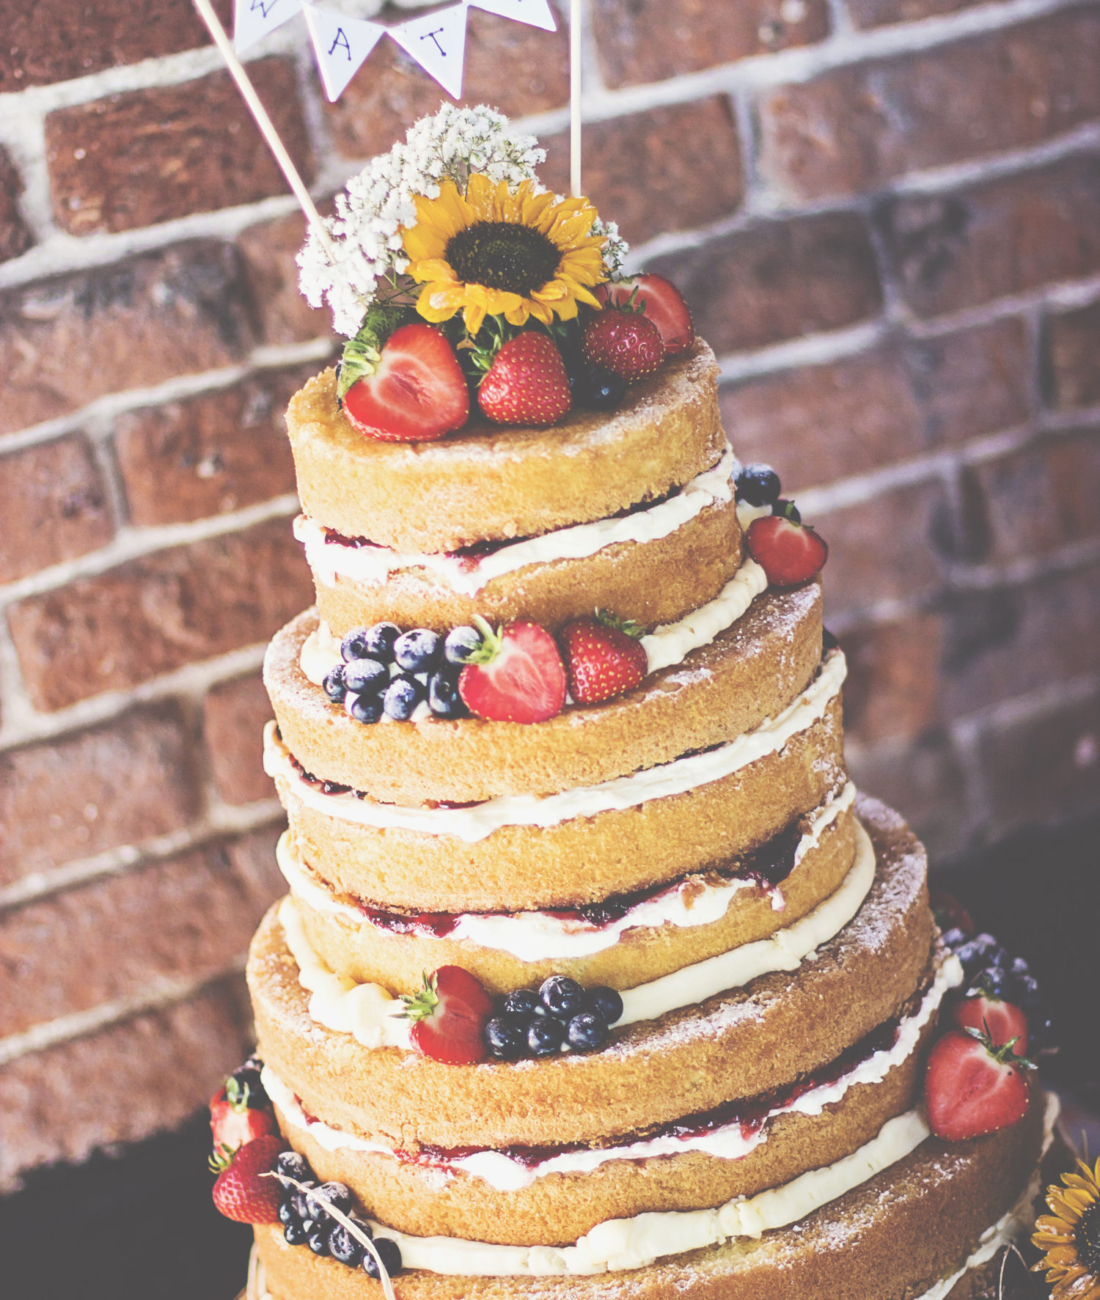 Naked-wedding-cake-sunflowers-bunting-rustic-vintage-dereham-norwich-norfolk